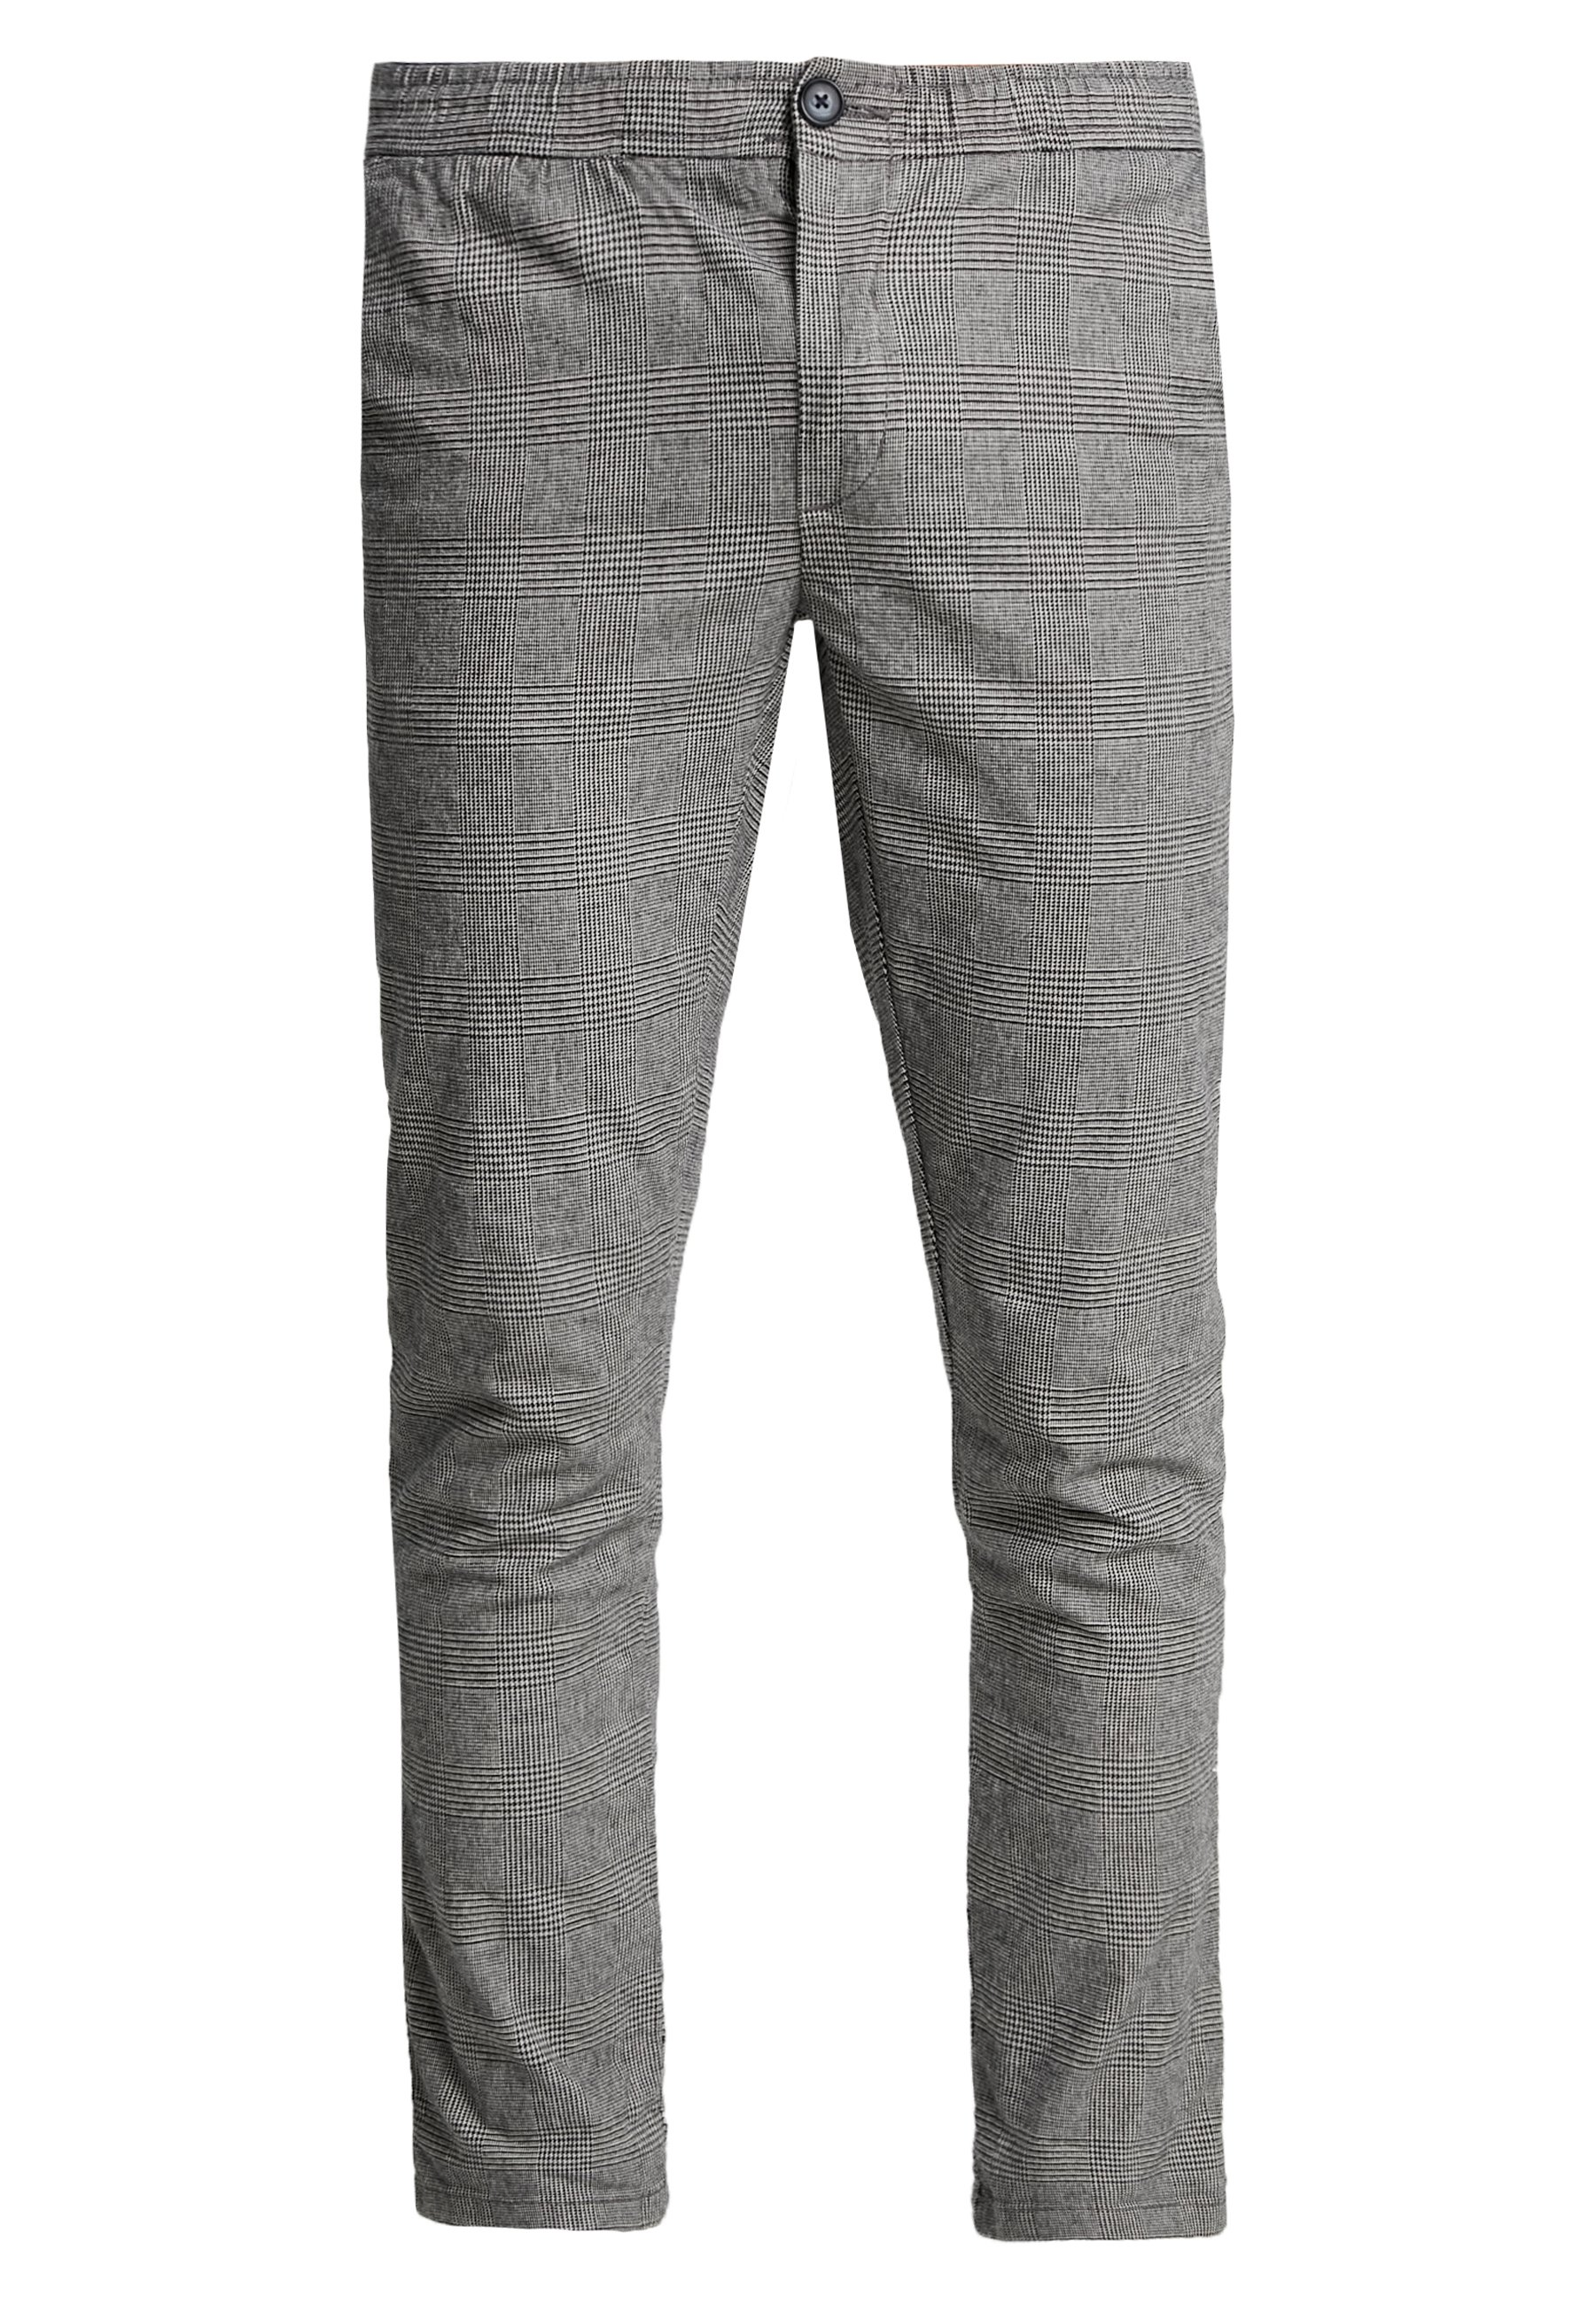 Redefined Rebel King Pants - Bukse Grey Check/grå